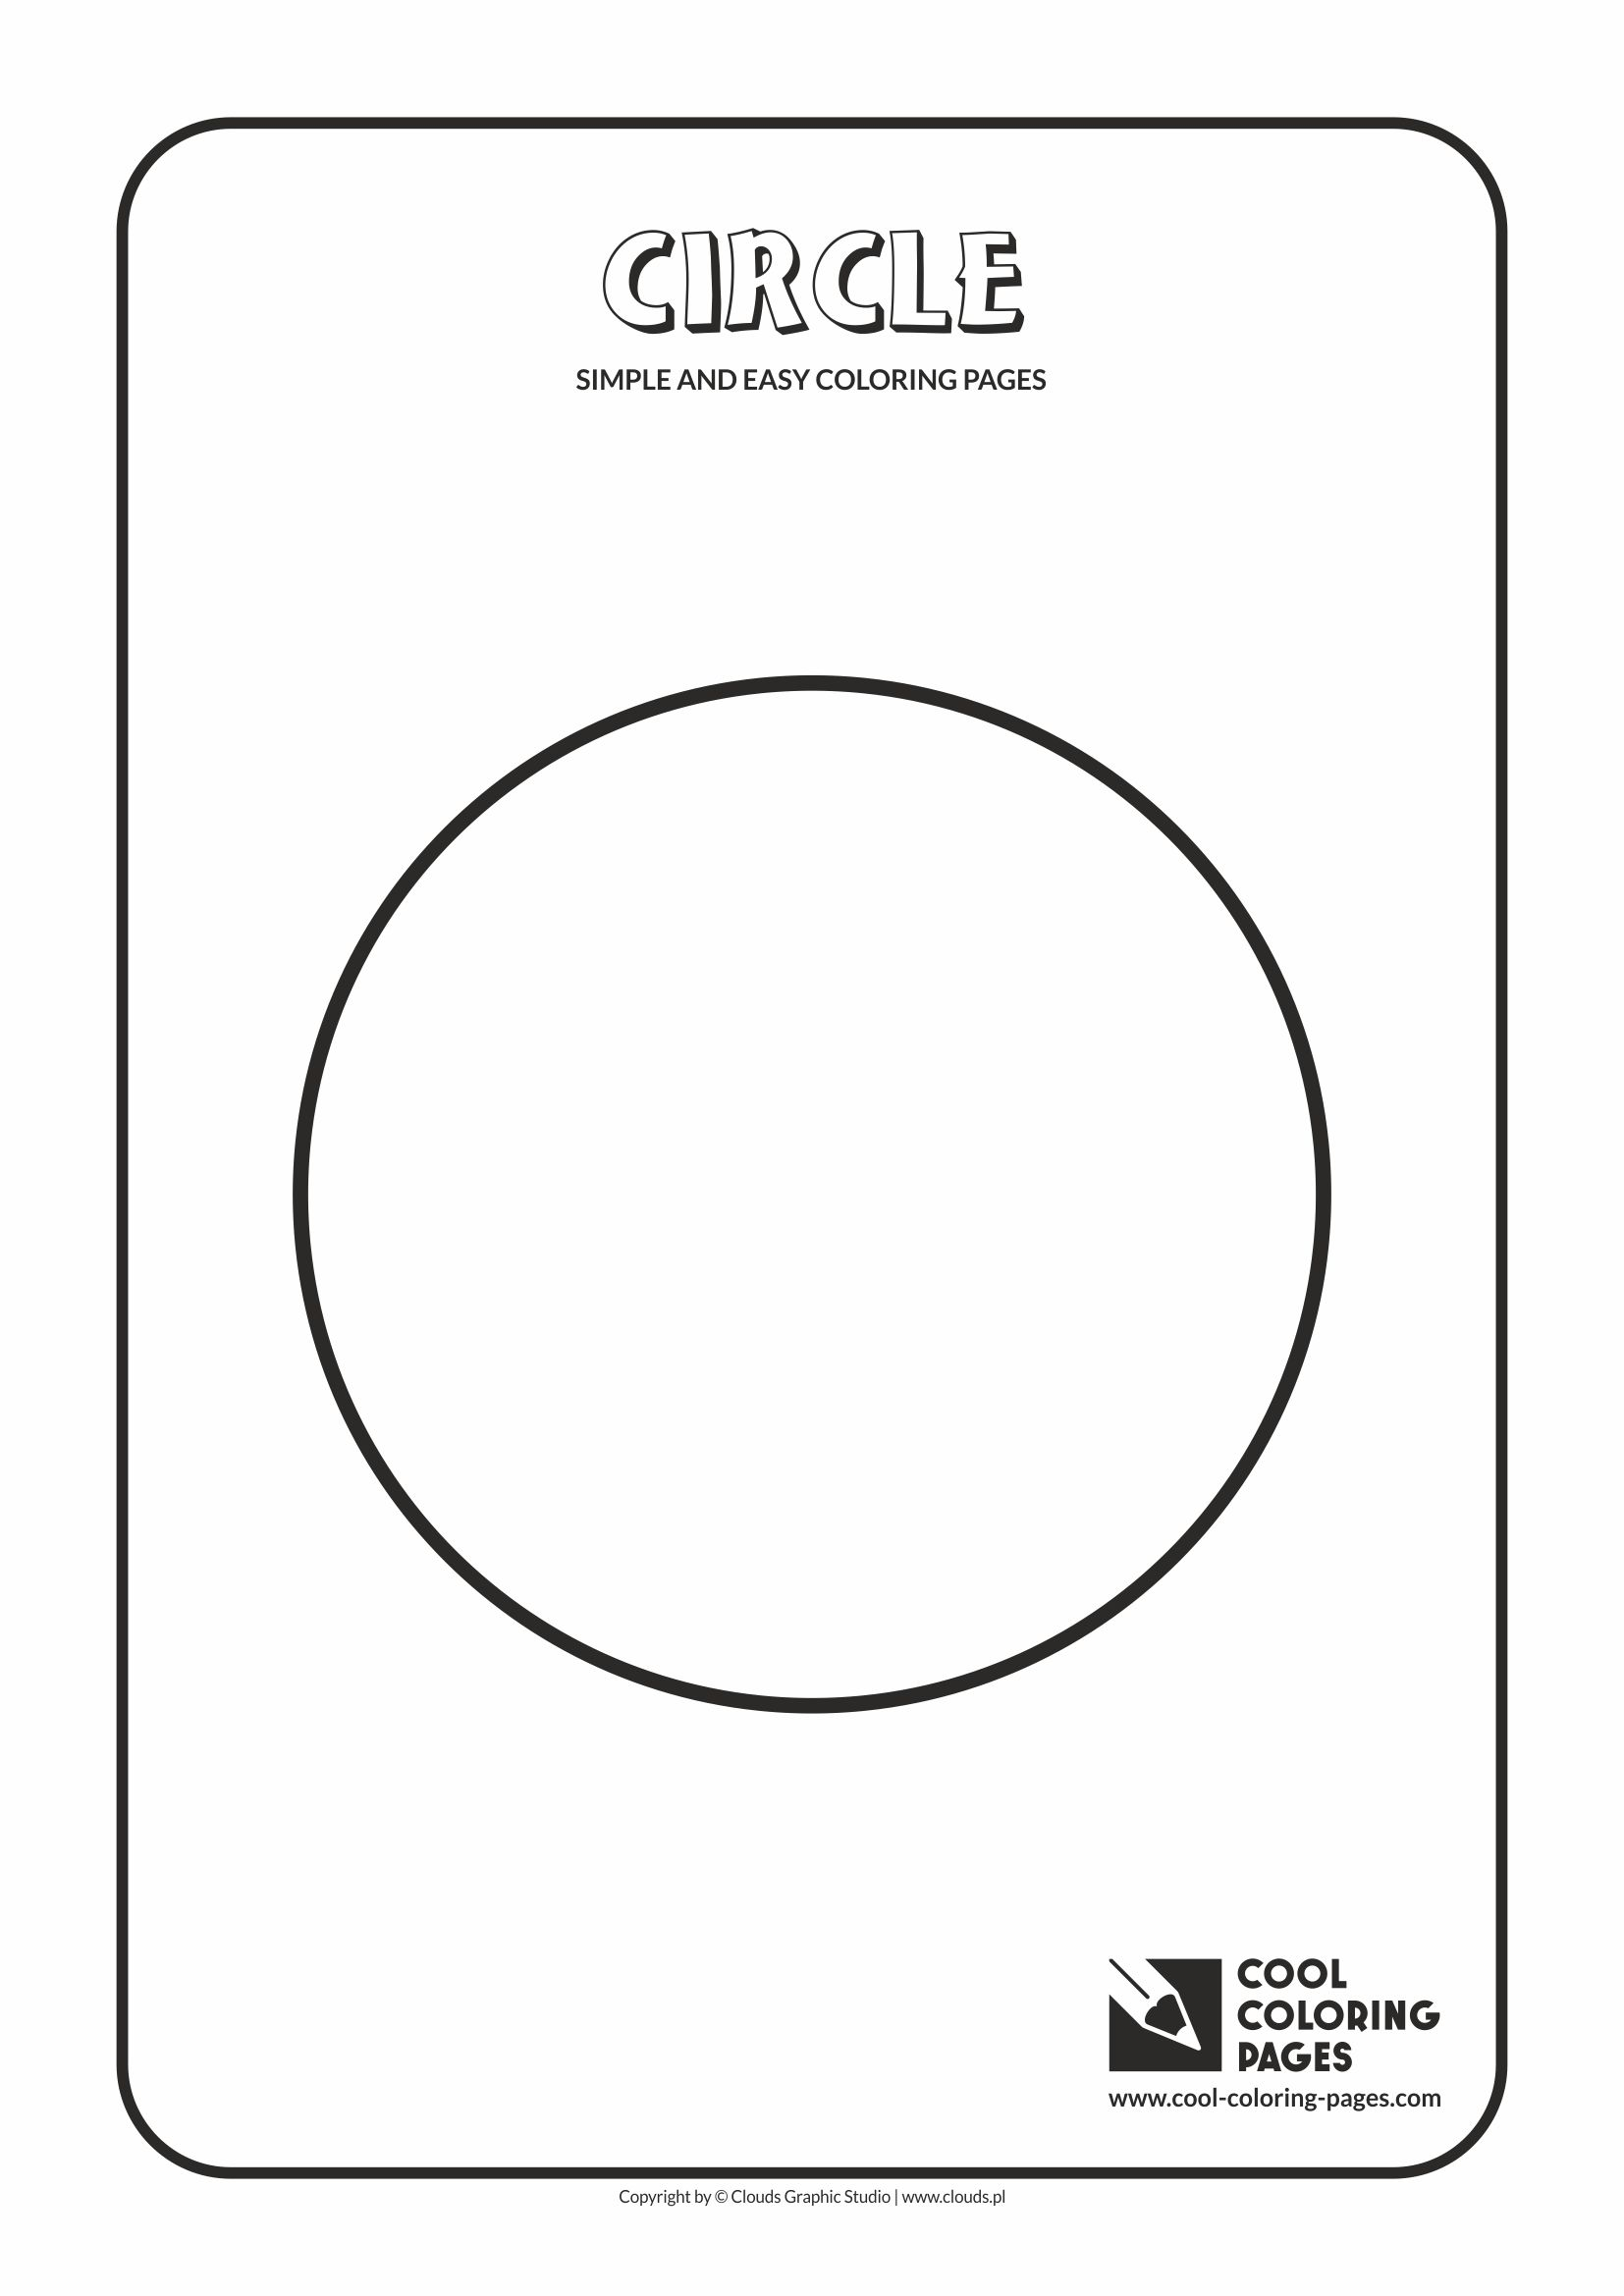 Simple and easy coloring pages for toddlers - Circle